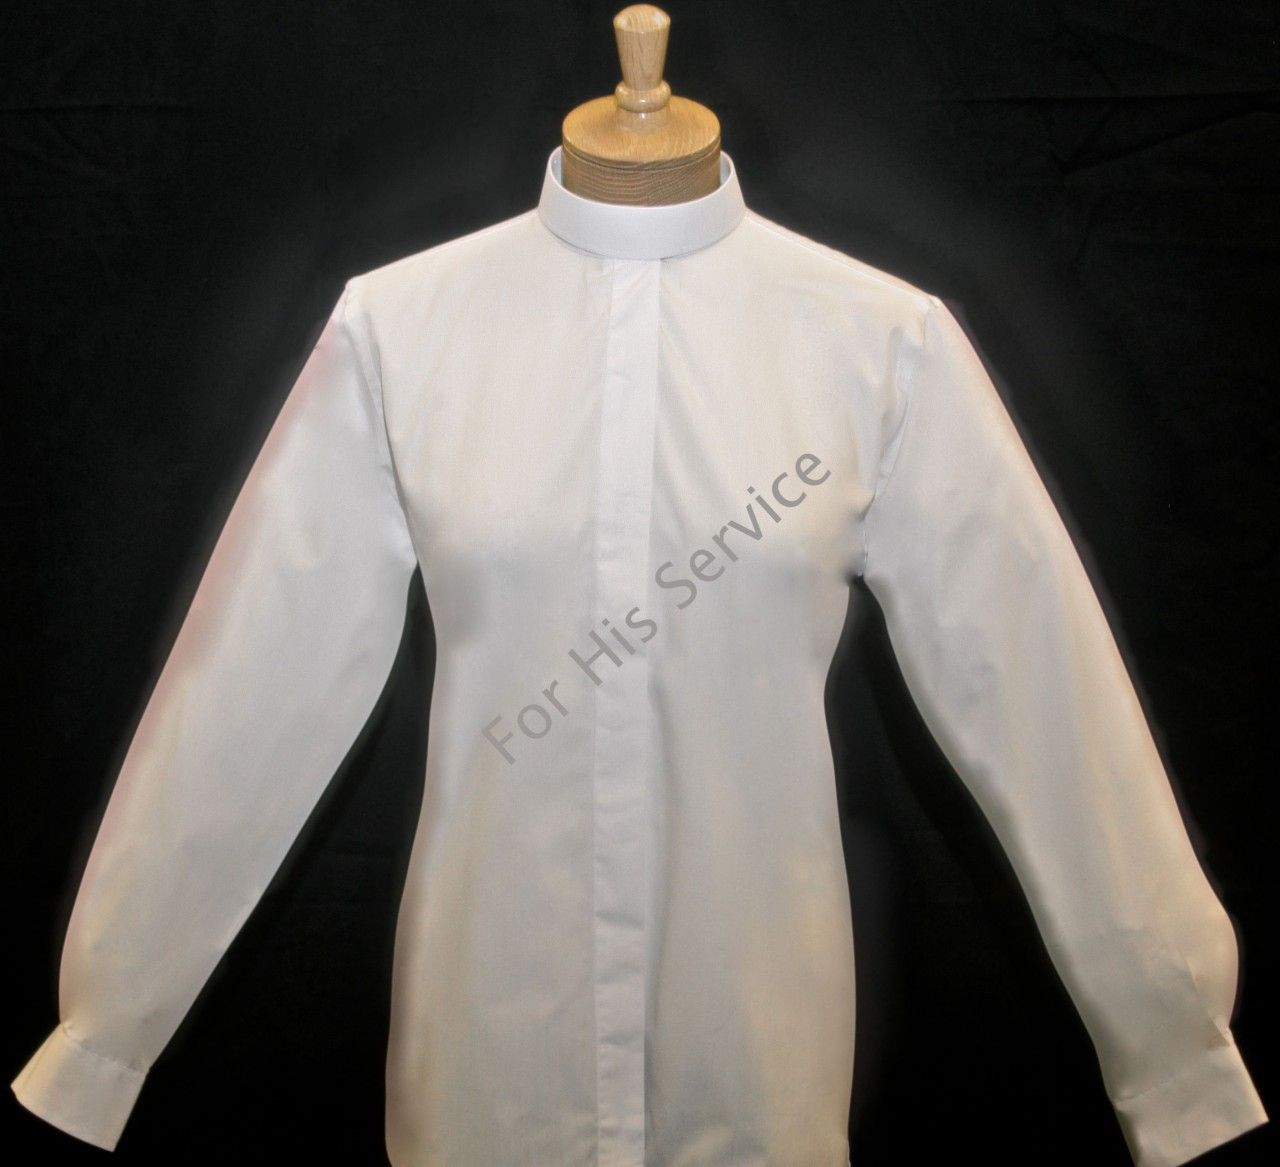 603. Women's Long-Sleeve (Banded) Full-Collar Clergy Shirt - White